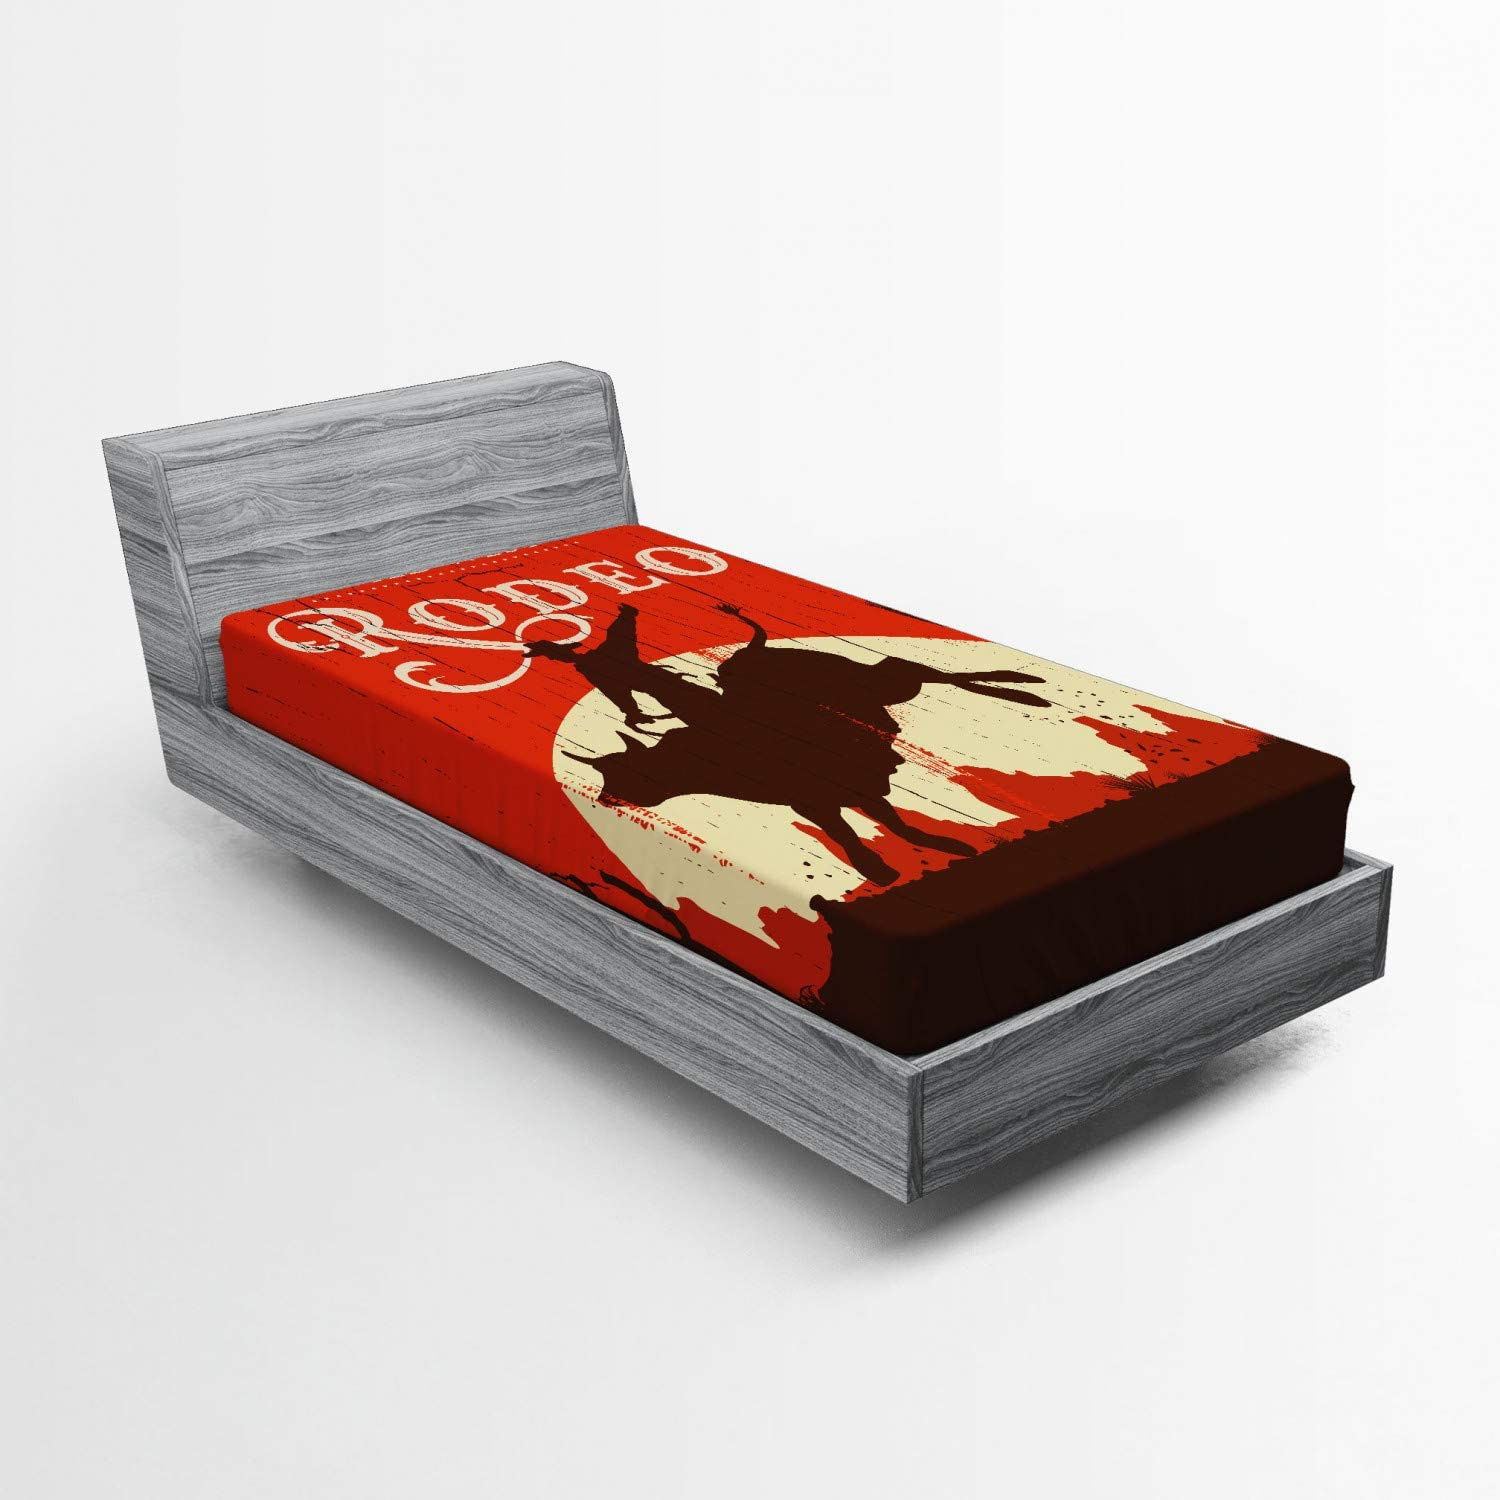 Ambesonne Vintage Fitted Sheet, Rodeo Cowboy Riding Bull Wooden Old Sign Western Style Wilderness at Sunset Image, Bed Cover with All-Round Elastic Deep Pocket for Comfort, Twin XL Size, Red Maroon